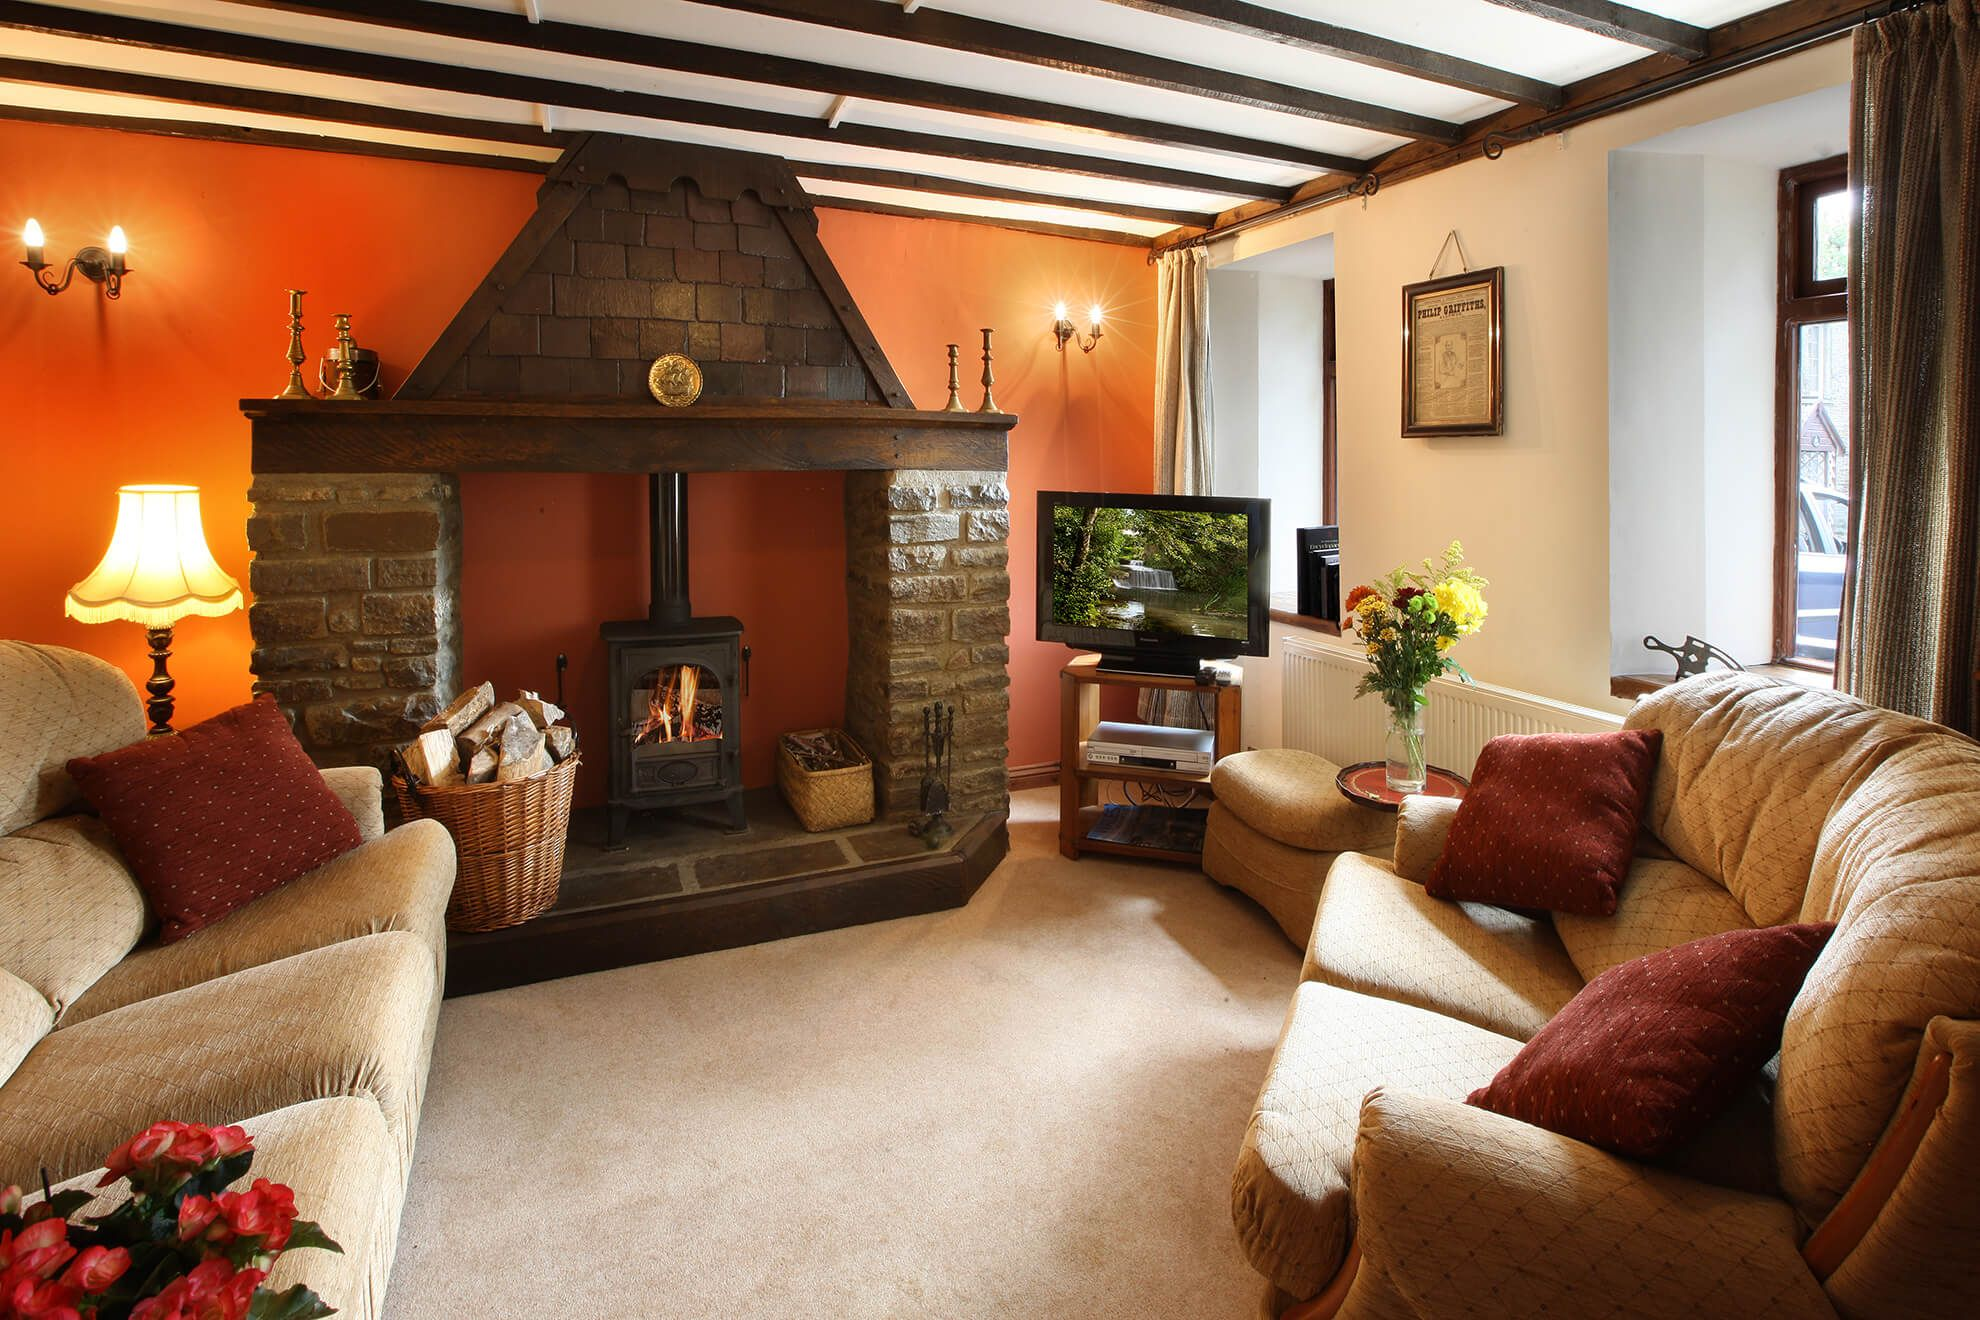 Ground floor: Living room with wood burning stove